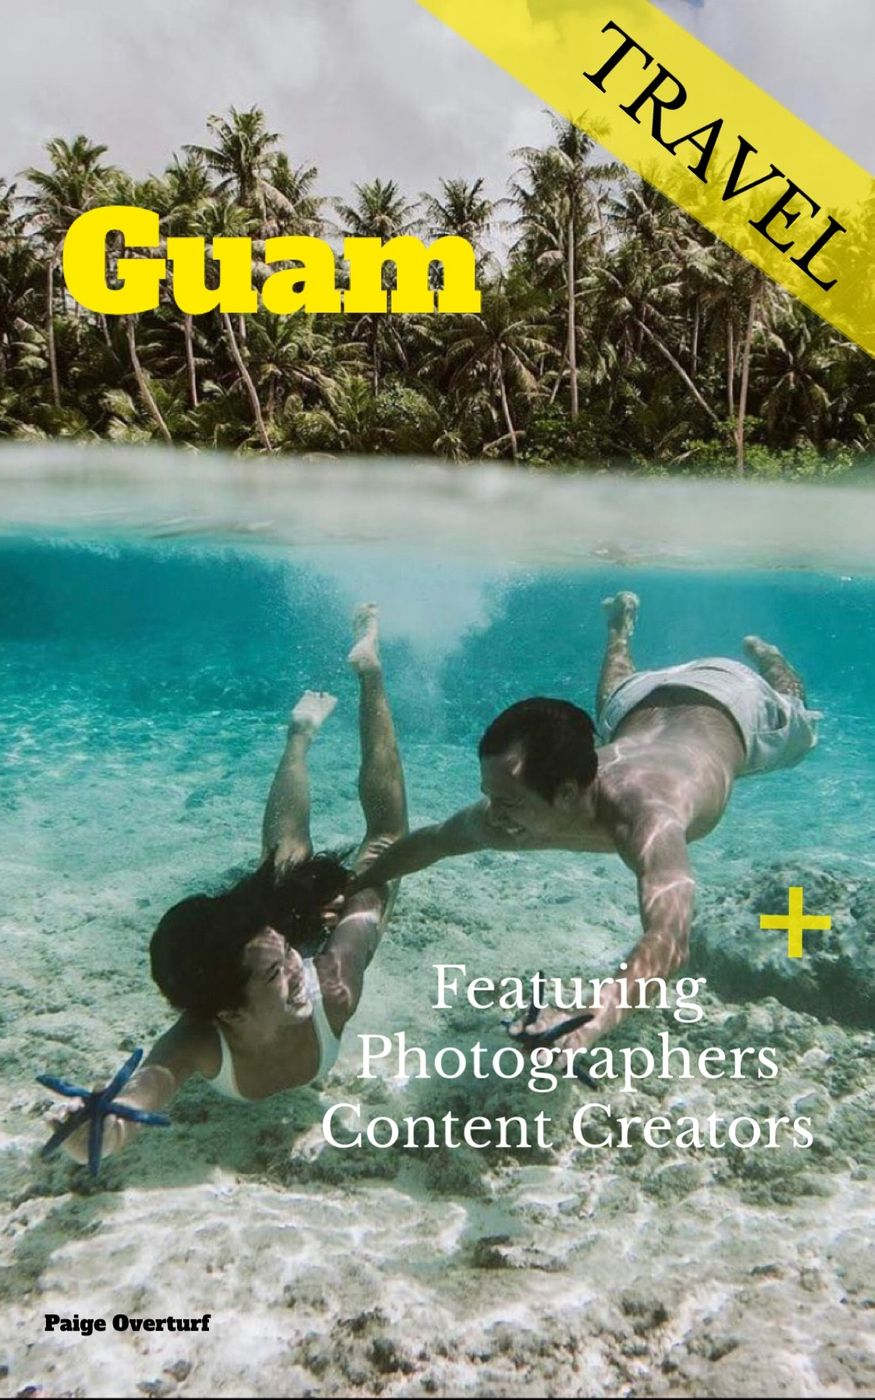 Featuring content creators and photographers | Guam🇬🇺